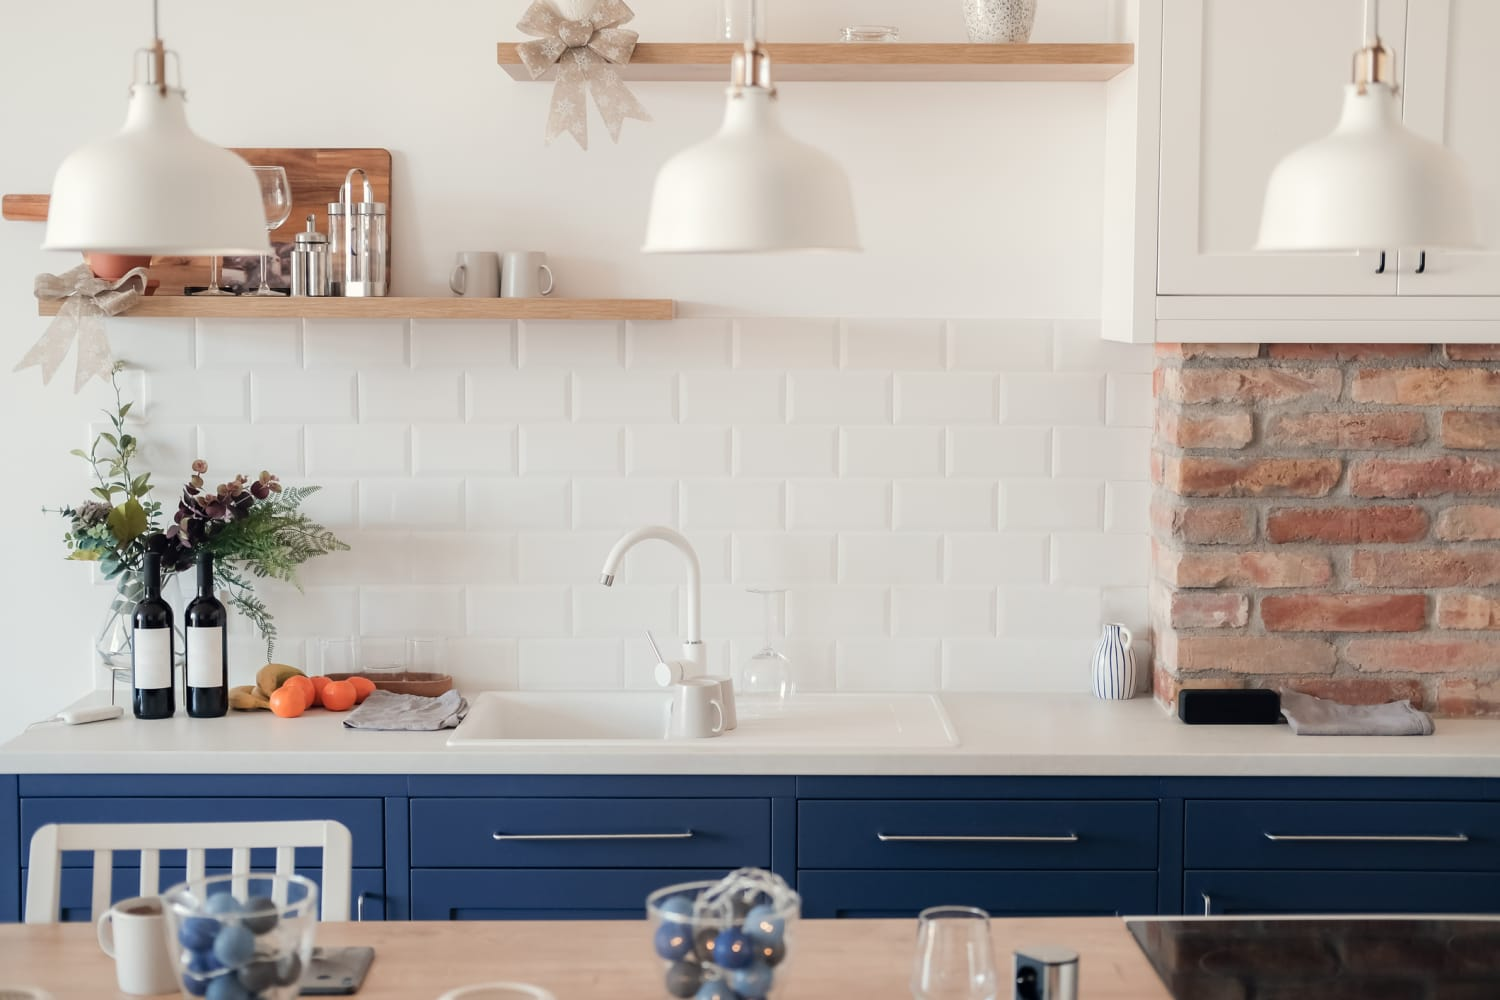 6 Pandemic Renovation Trends to Avoid, According to Real Estate Agents